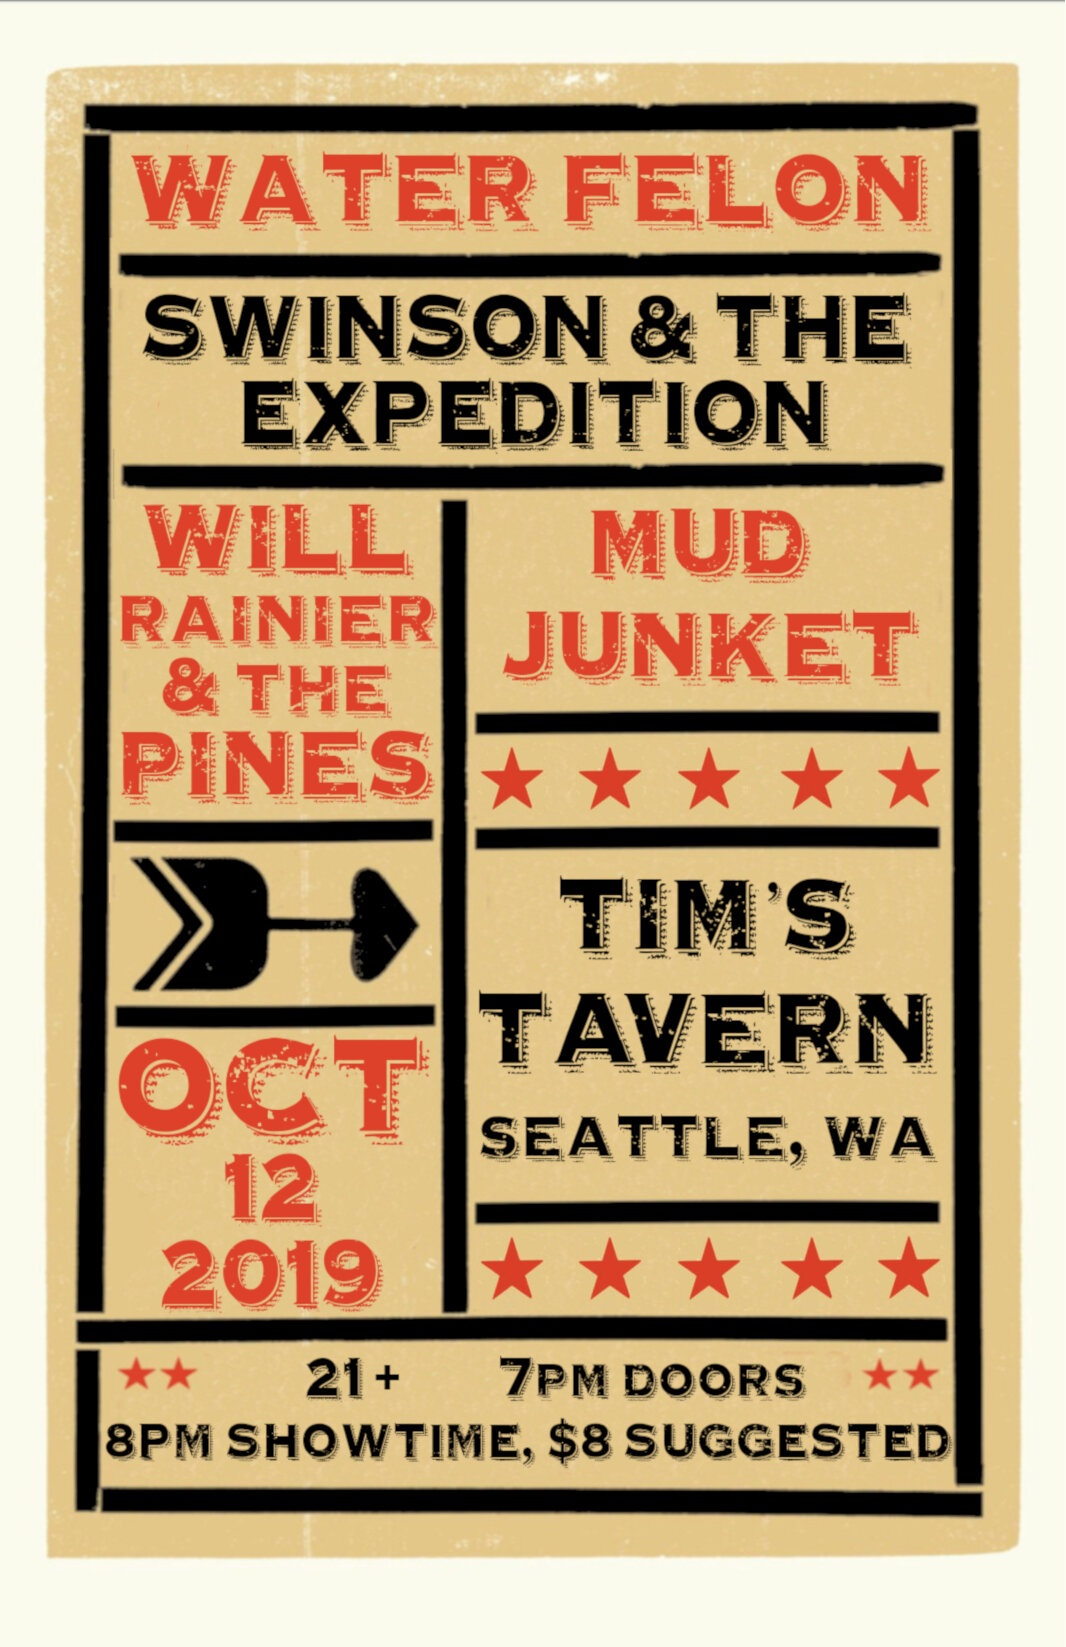 TimsTavern Oct 12 Show Poster.jpg